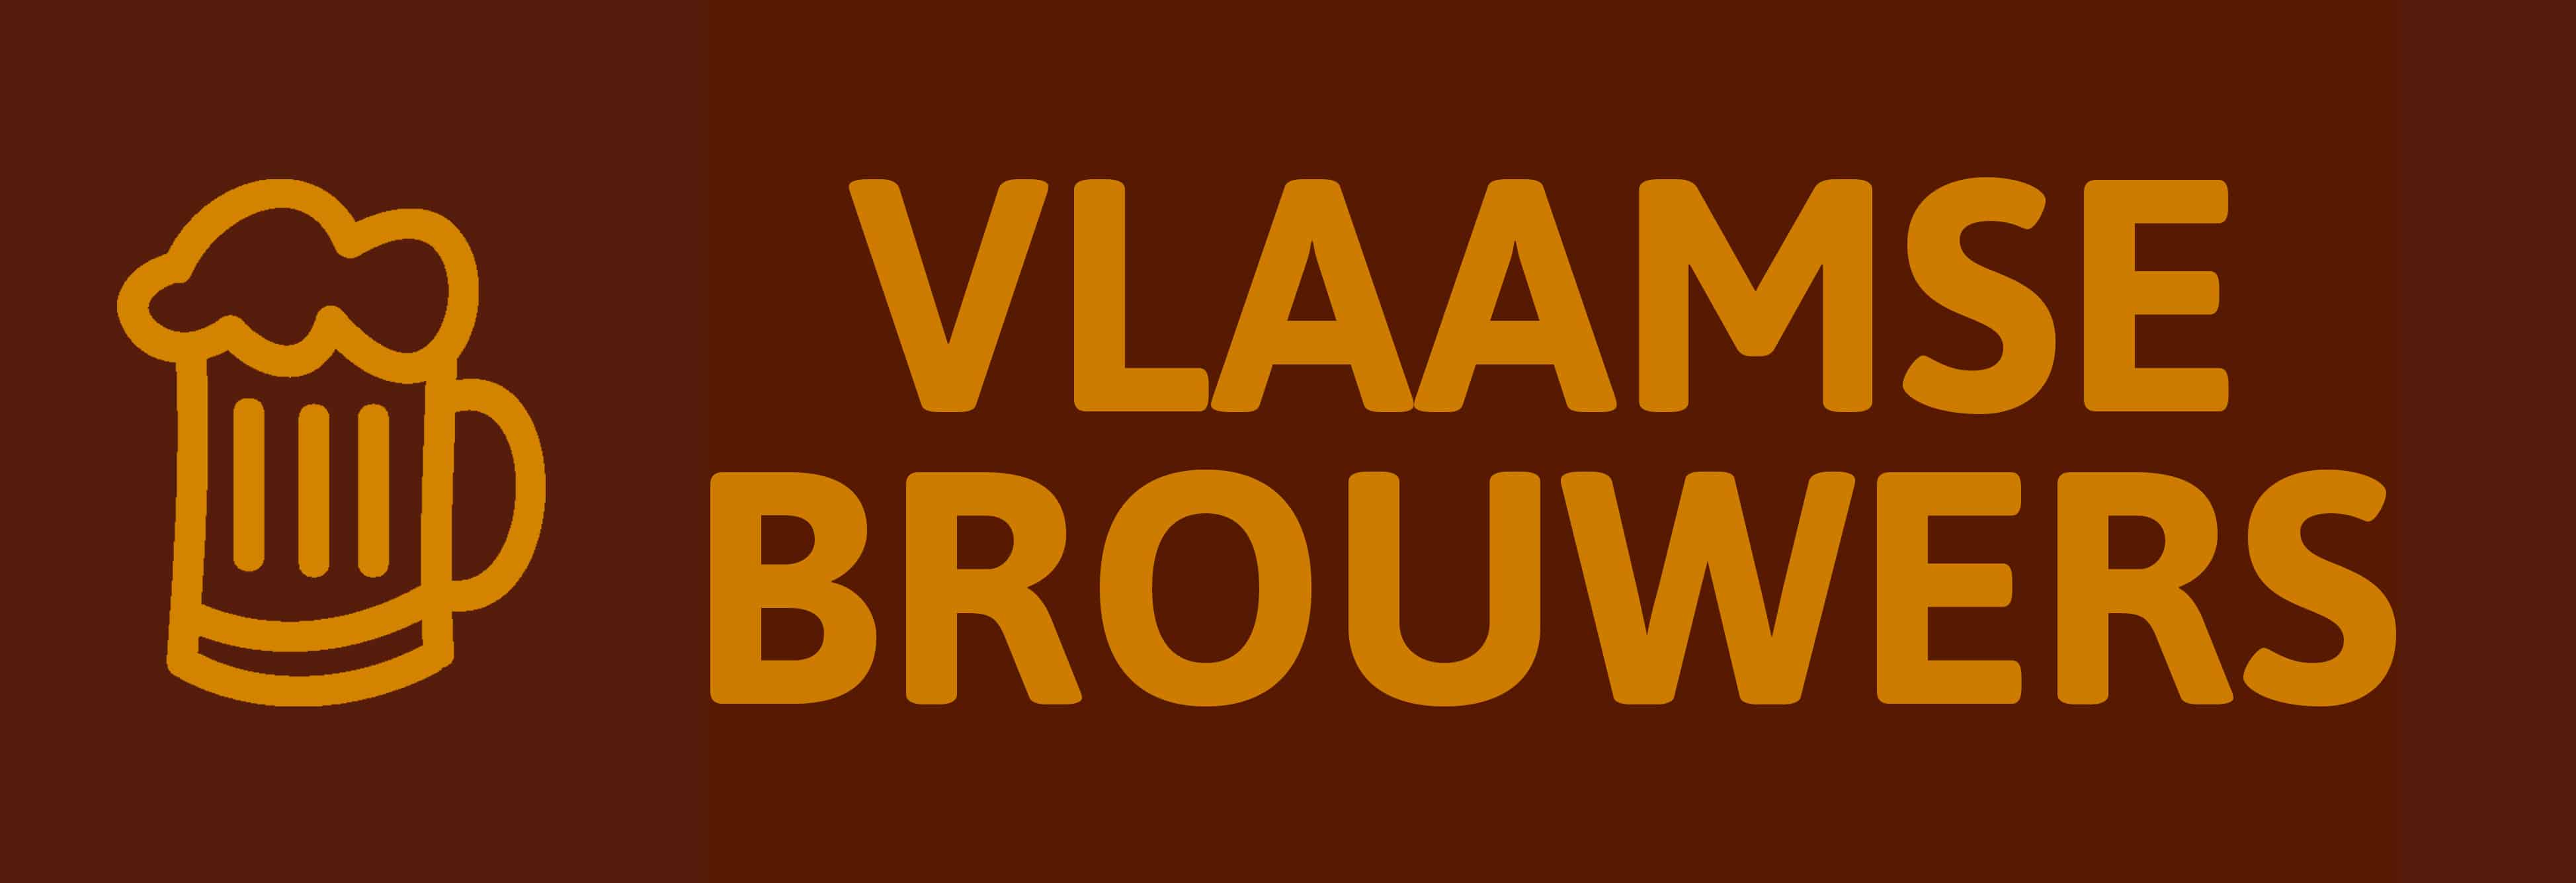 Vlaamse Brouwers webshop